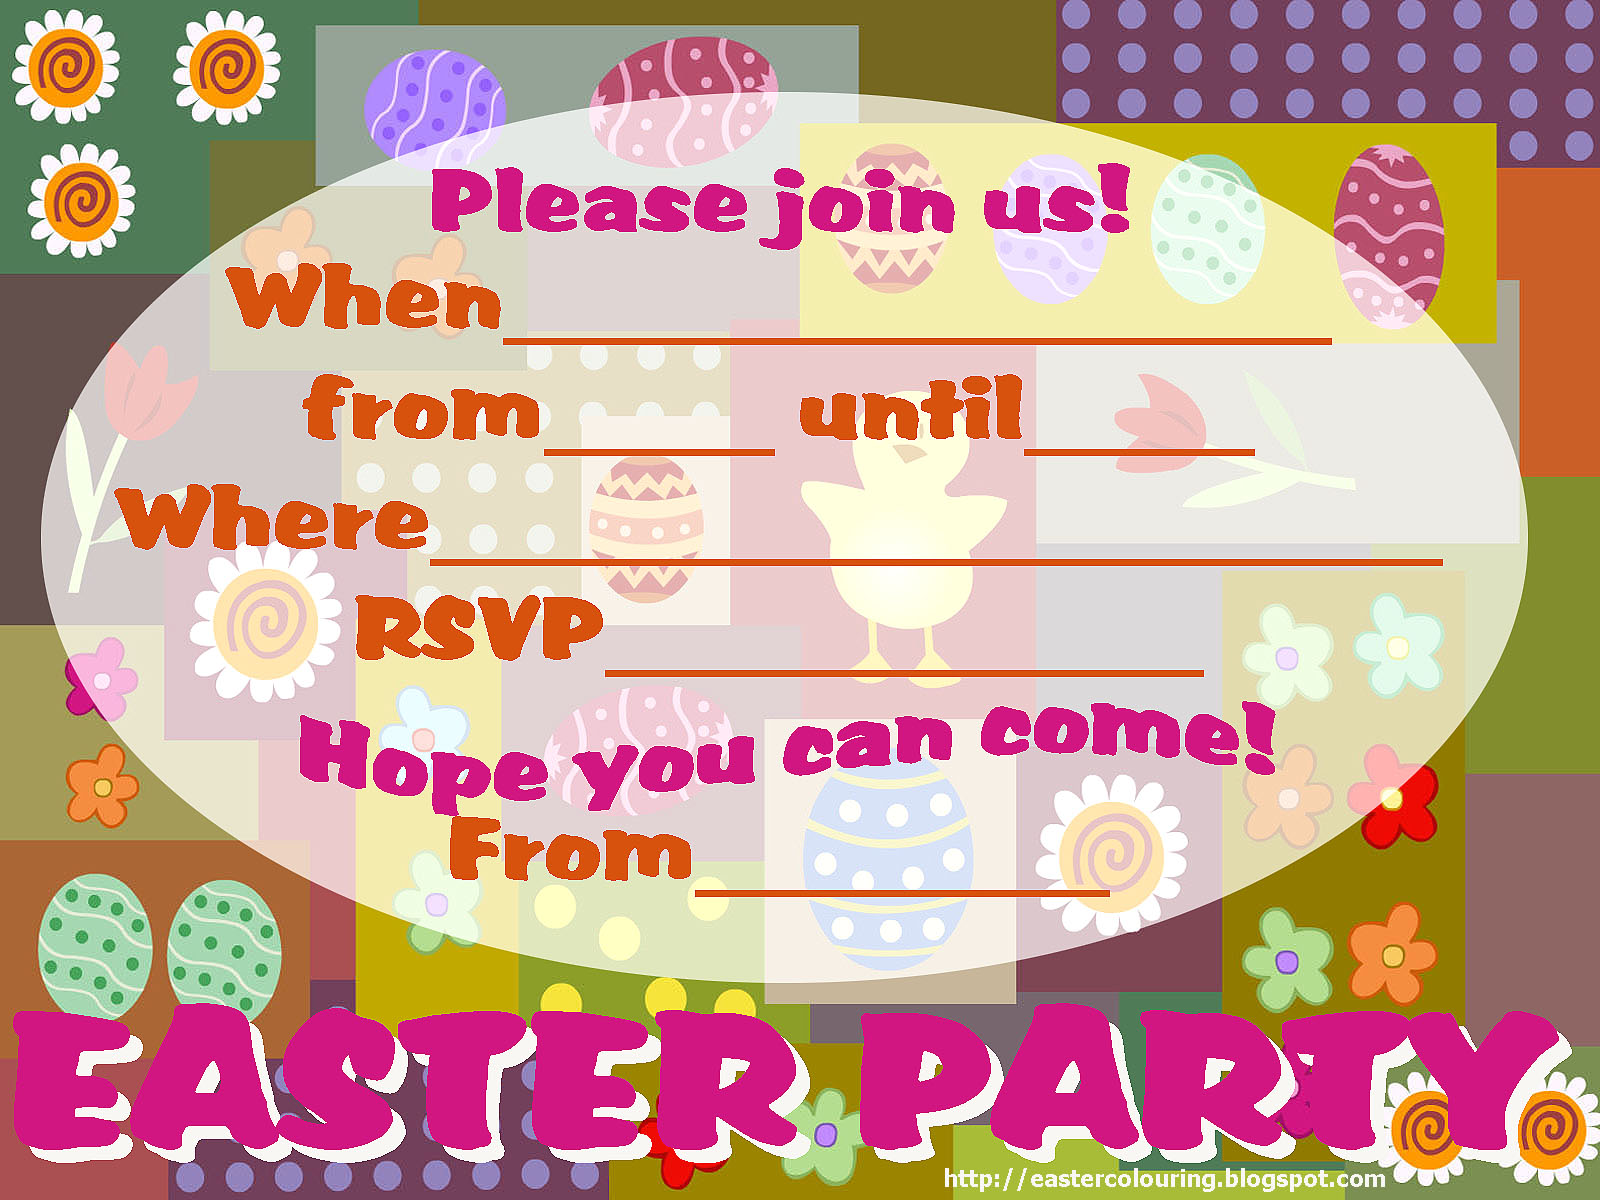 EASTER COLOURING FREE FILL IN THE BLANKS EASTER PARTY INVITATIONS